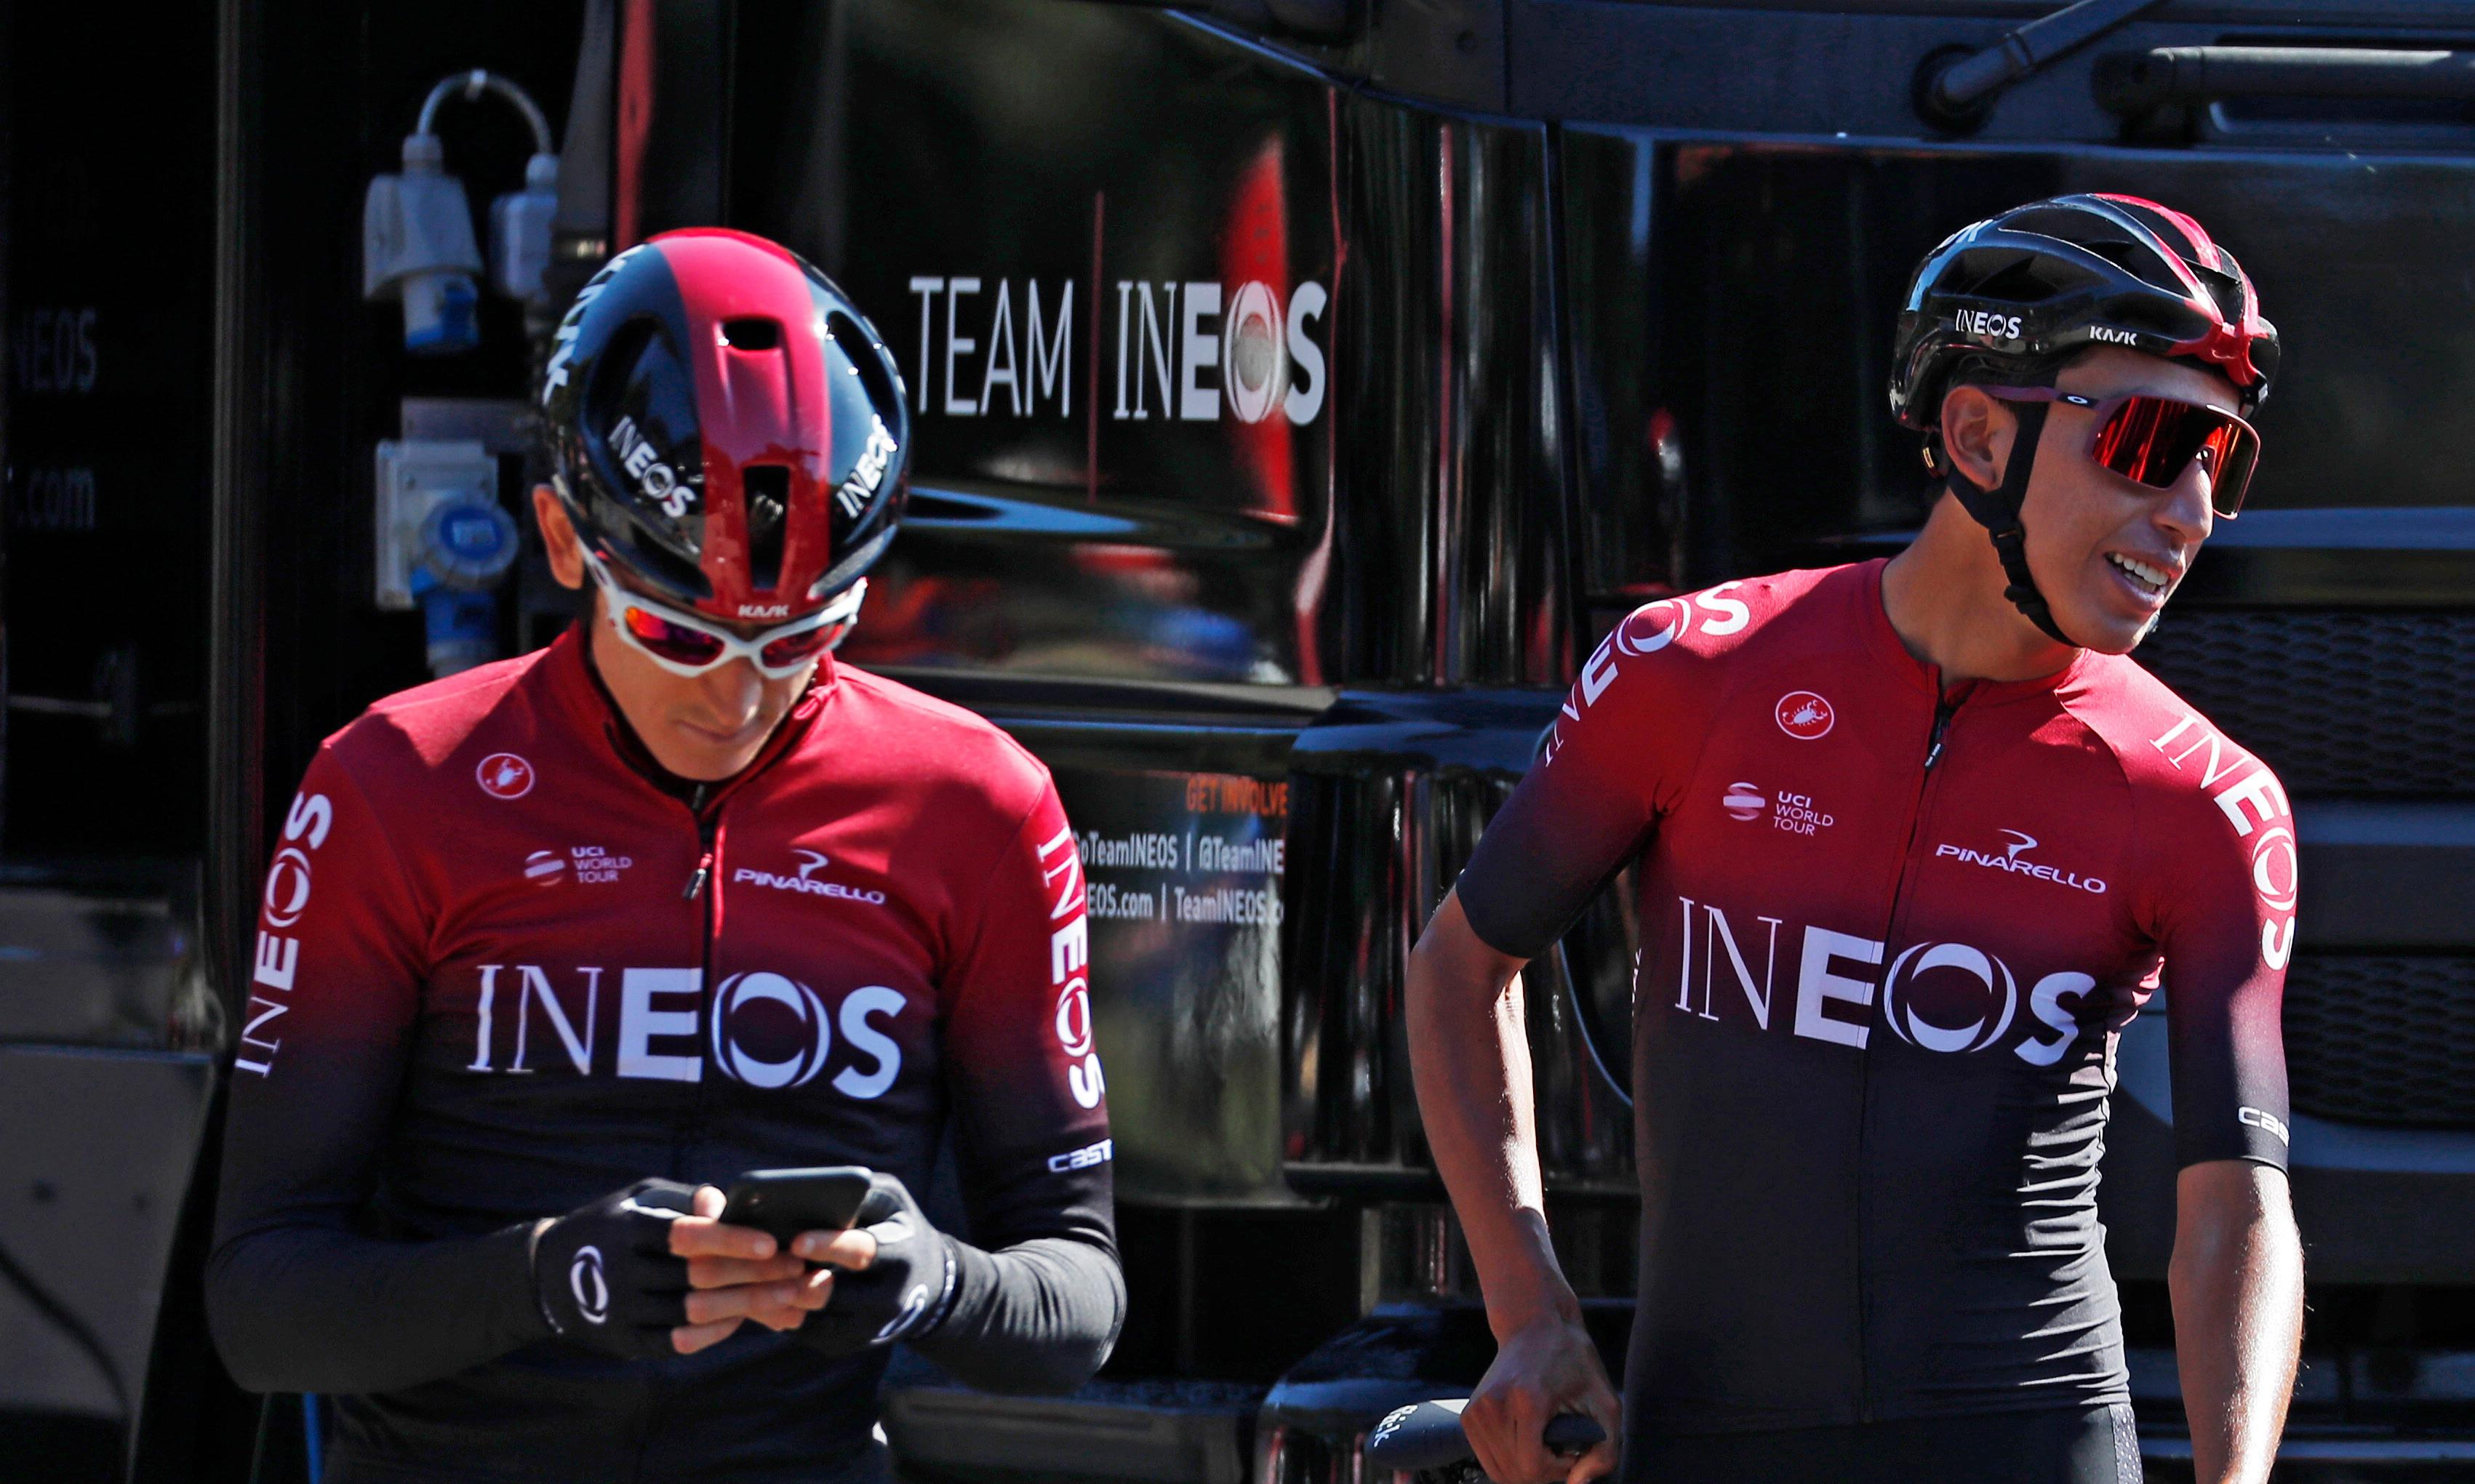 Froome's absence gives Tour riders reason to believe in their chances